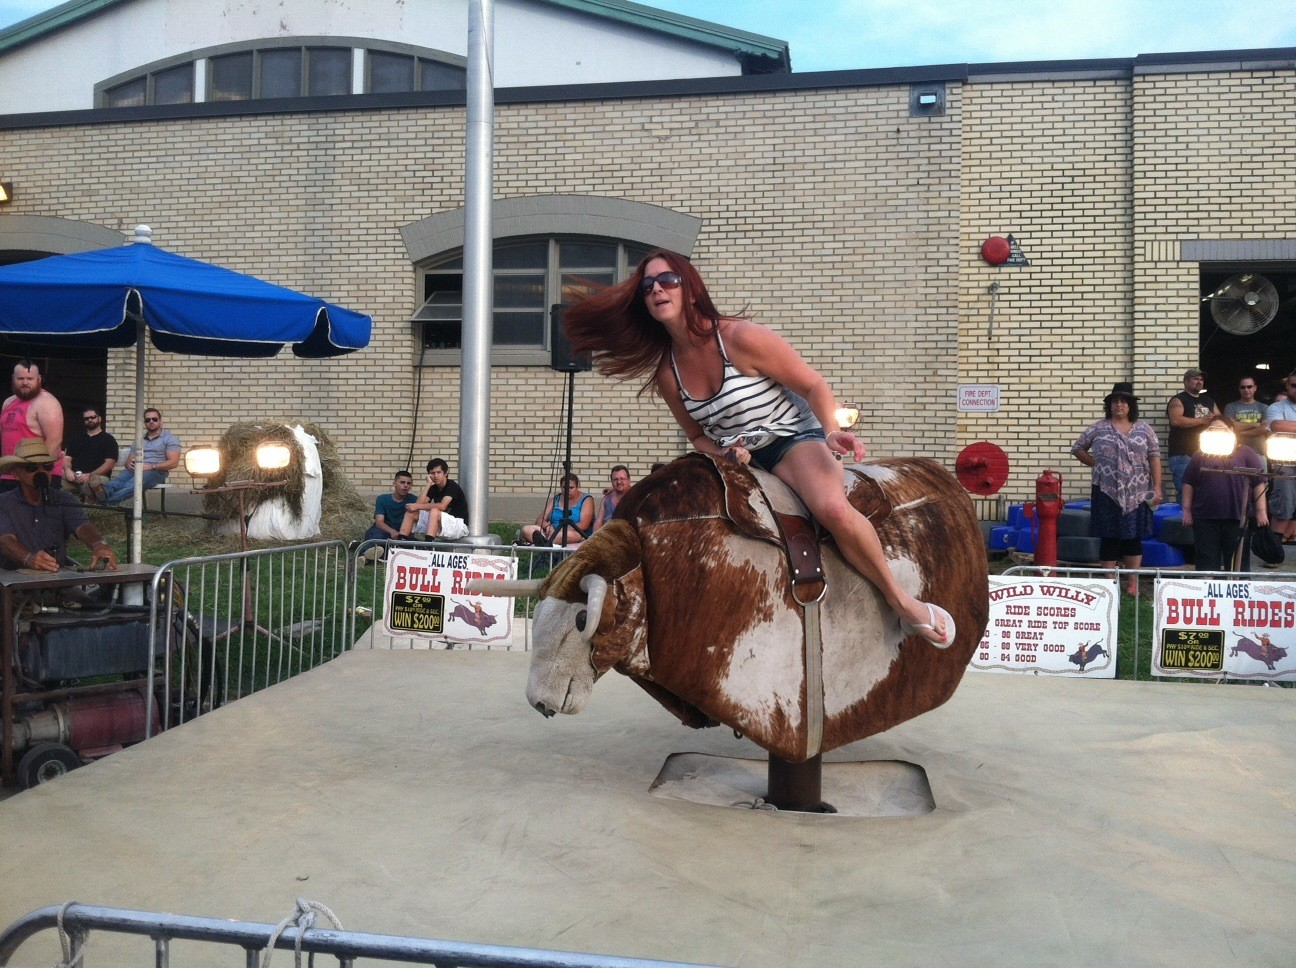 The Bull Ride